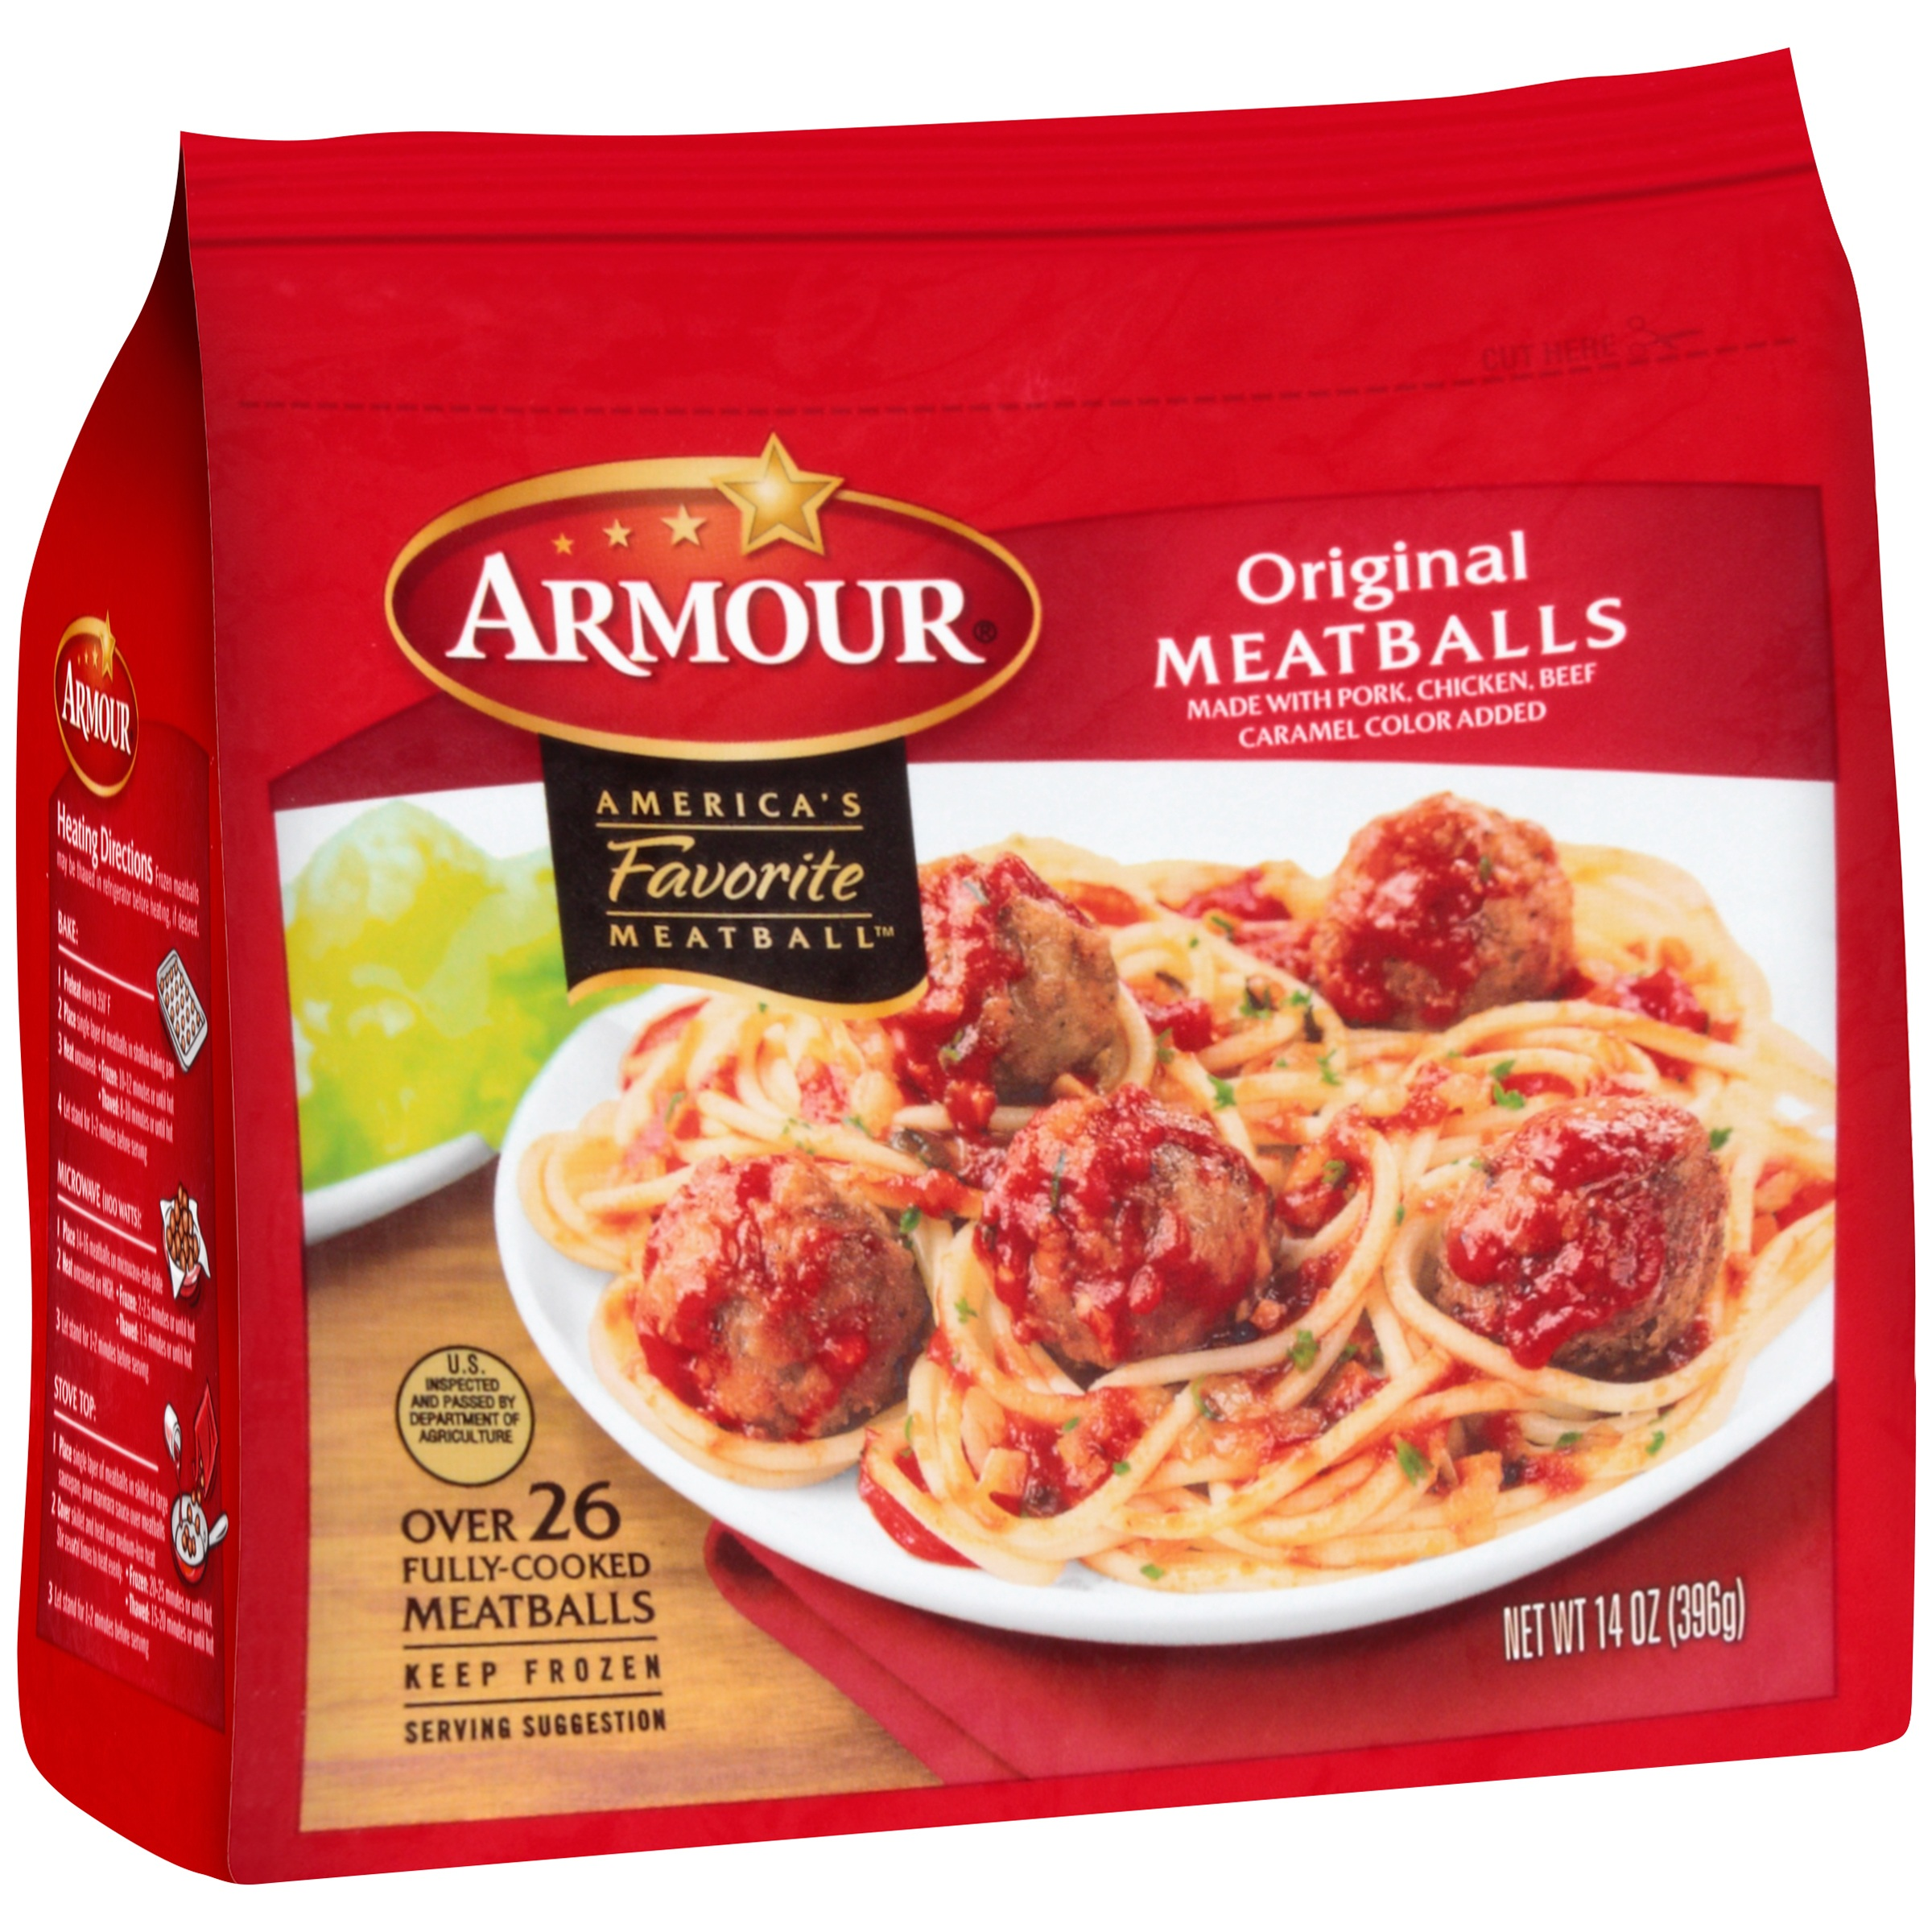 Armour® Original Meatballs 14 oz. Bag